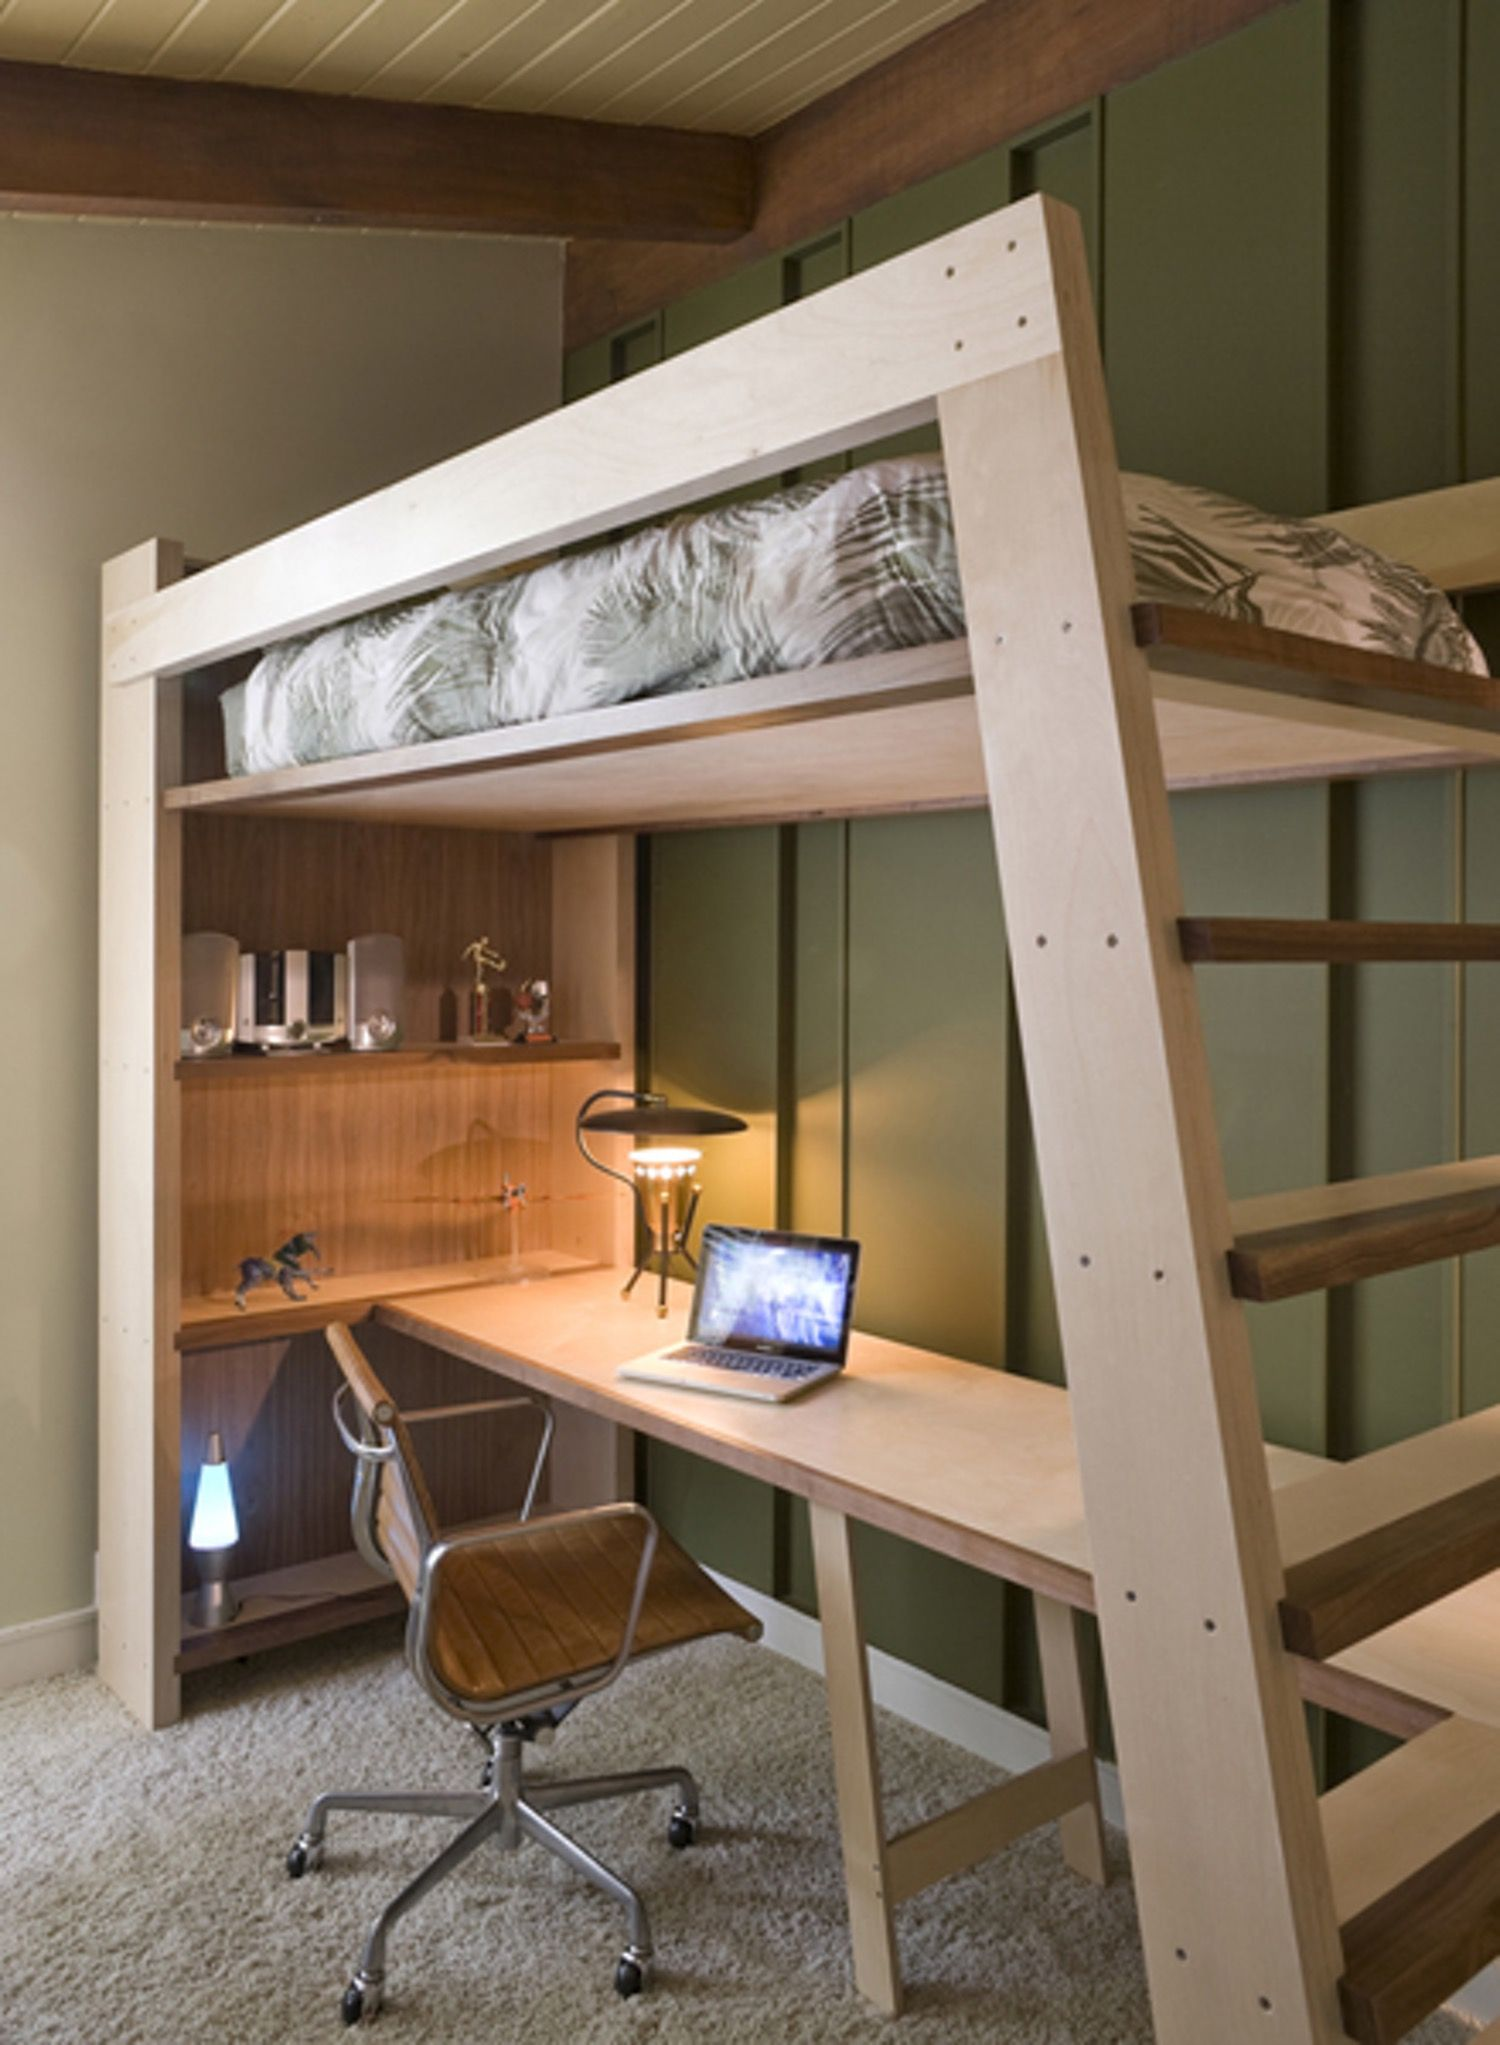 Mezzanine Bed Design handmade modern: a lofted bed you can't find in stores | modern